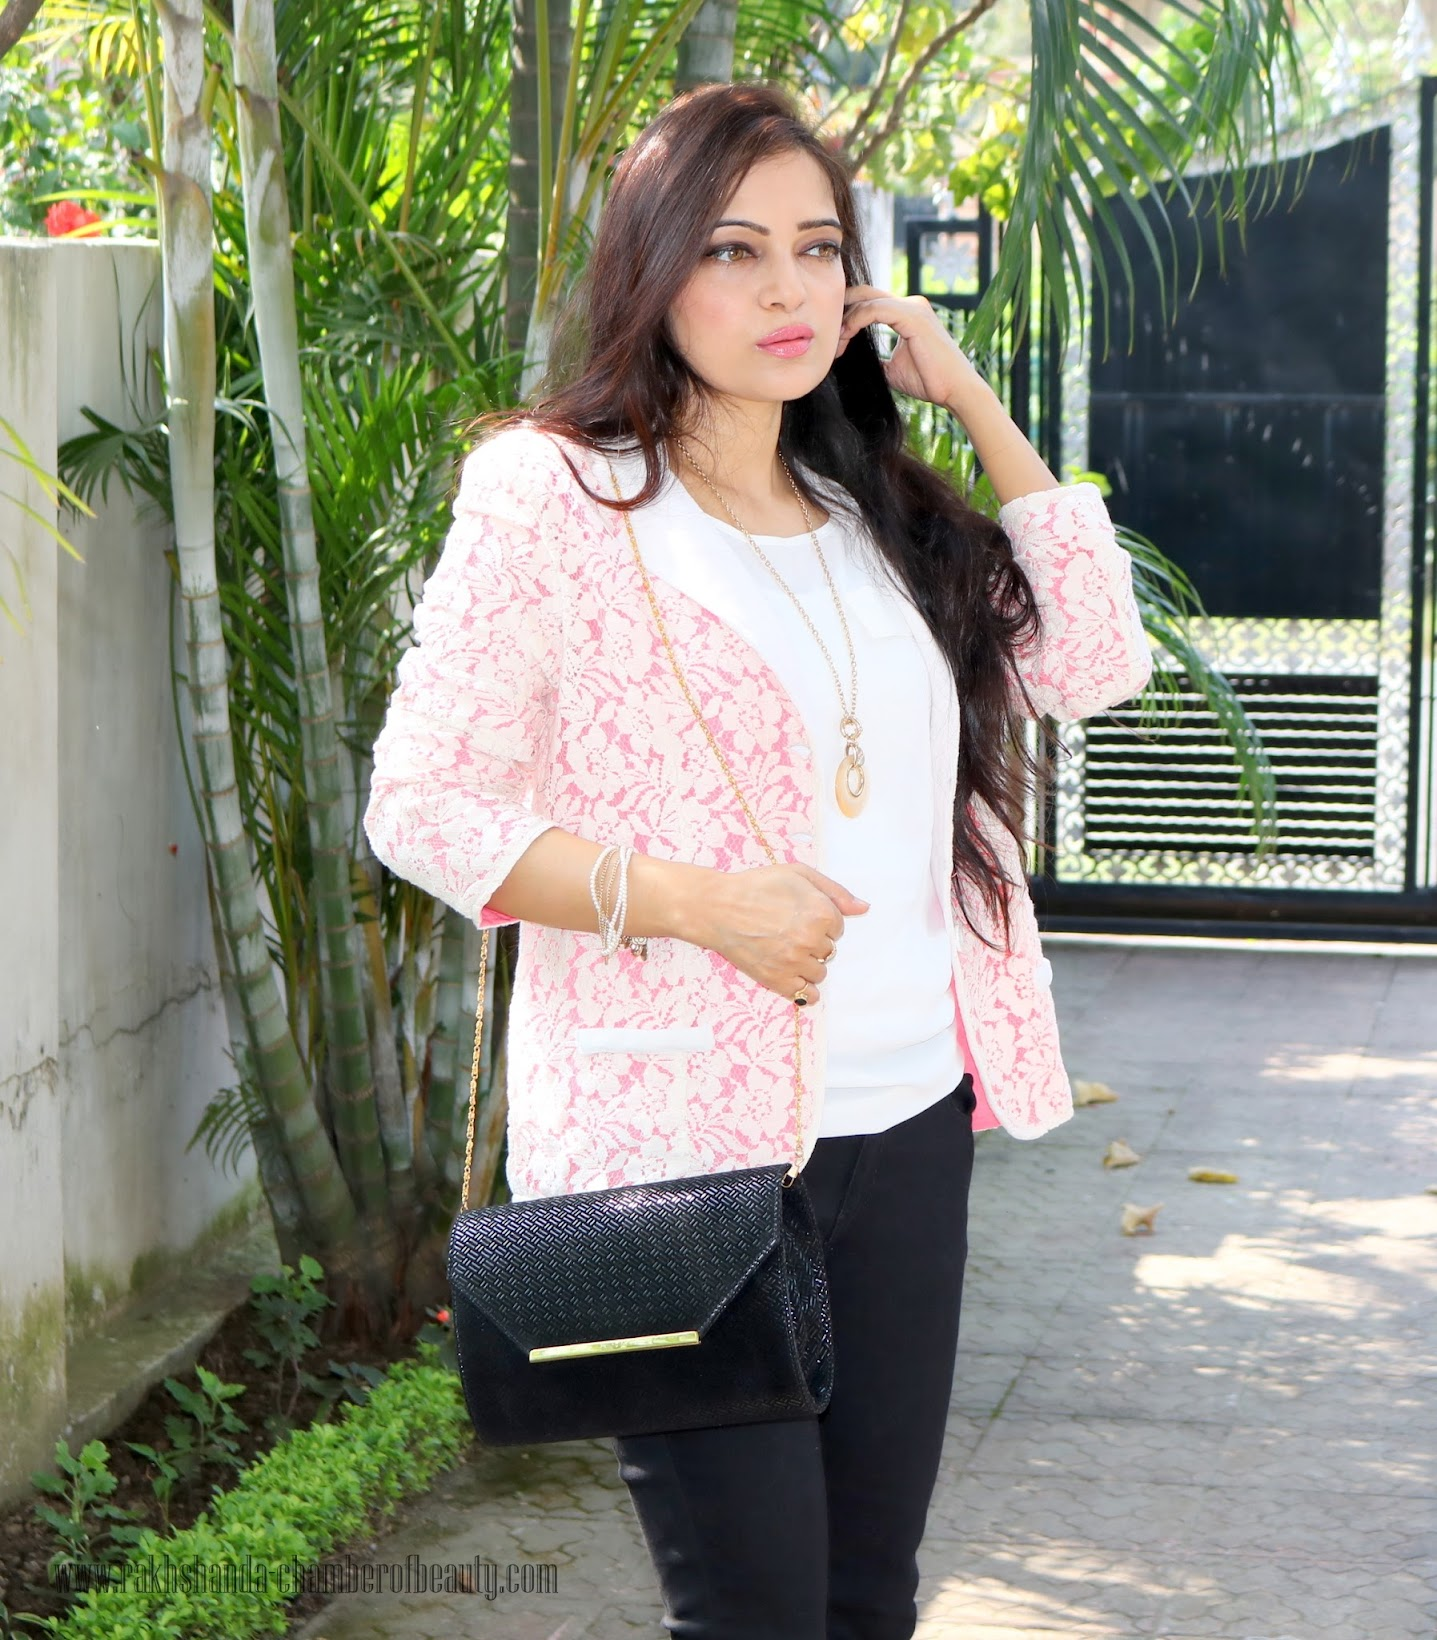 Pink and lace blazer from Stalkbuylove, How to wear a blazer, Breast cancer awareness, Fashion trends 2015, Stalkbuylove Pink Ribbon Collection, Indian fashion blogger, Chamber of Beauty